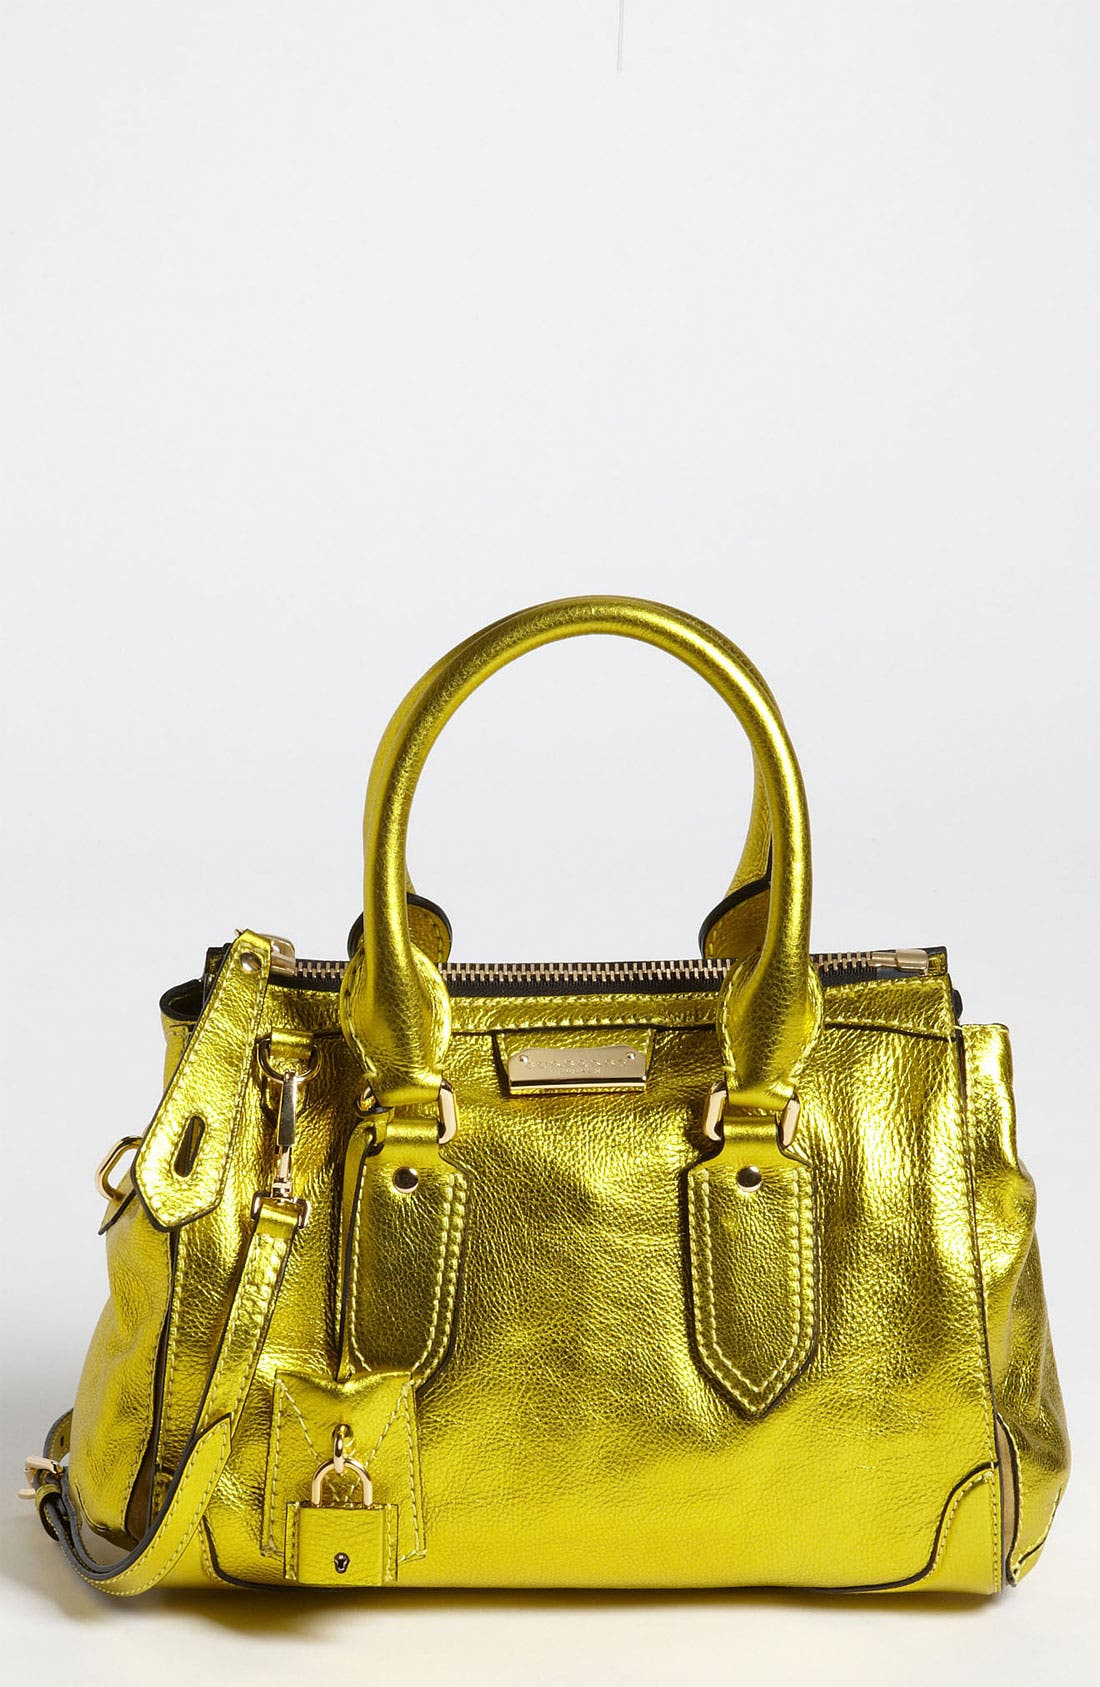 Alternate Image 1 Selected - Burberry 'Soft Grainy Metallic' Leather Satchel